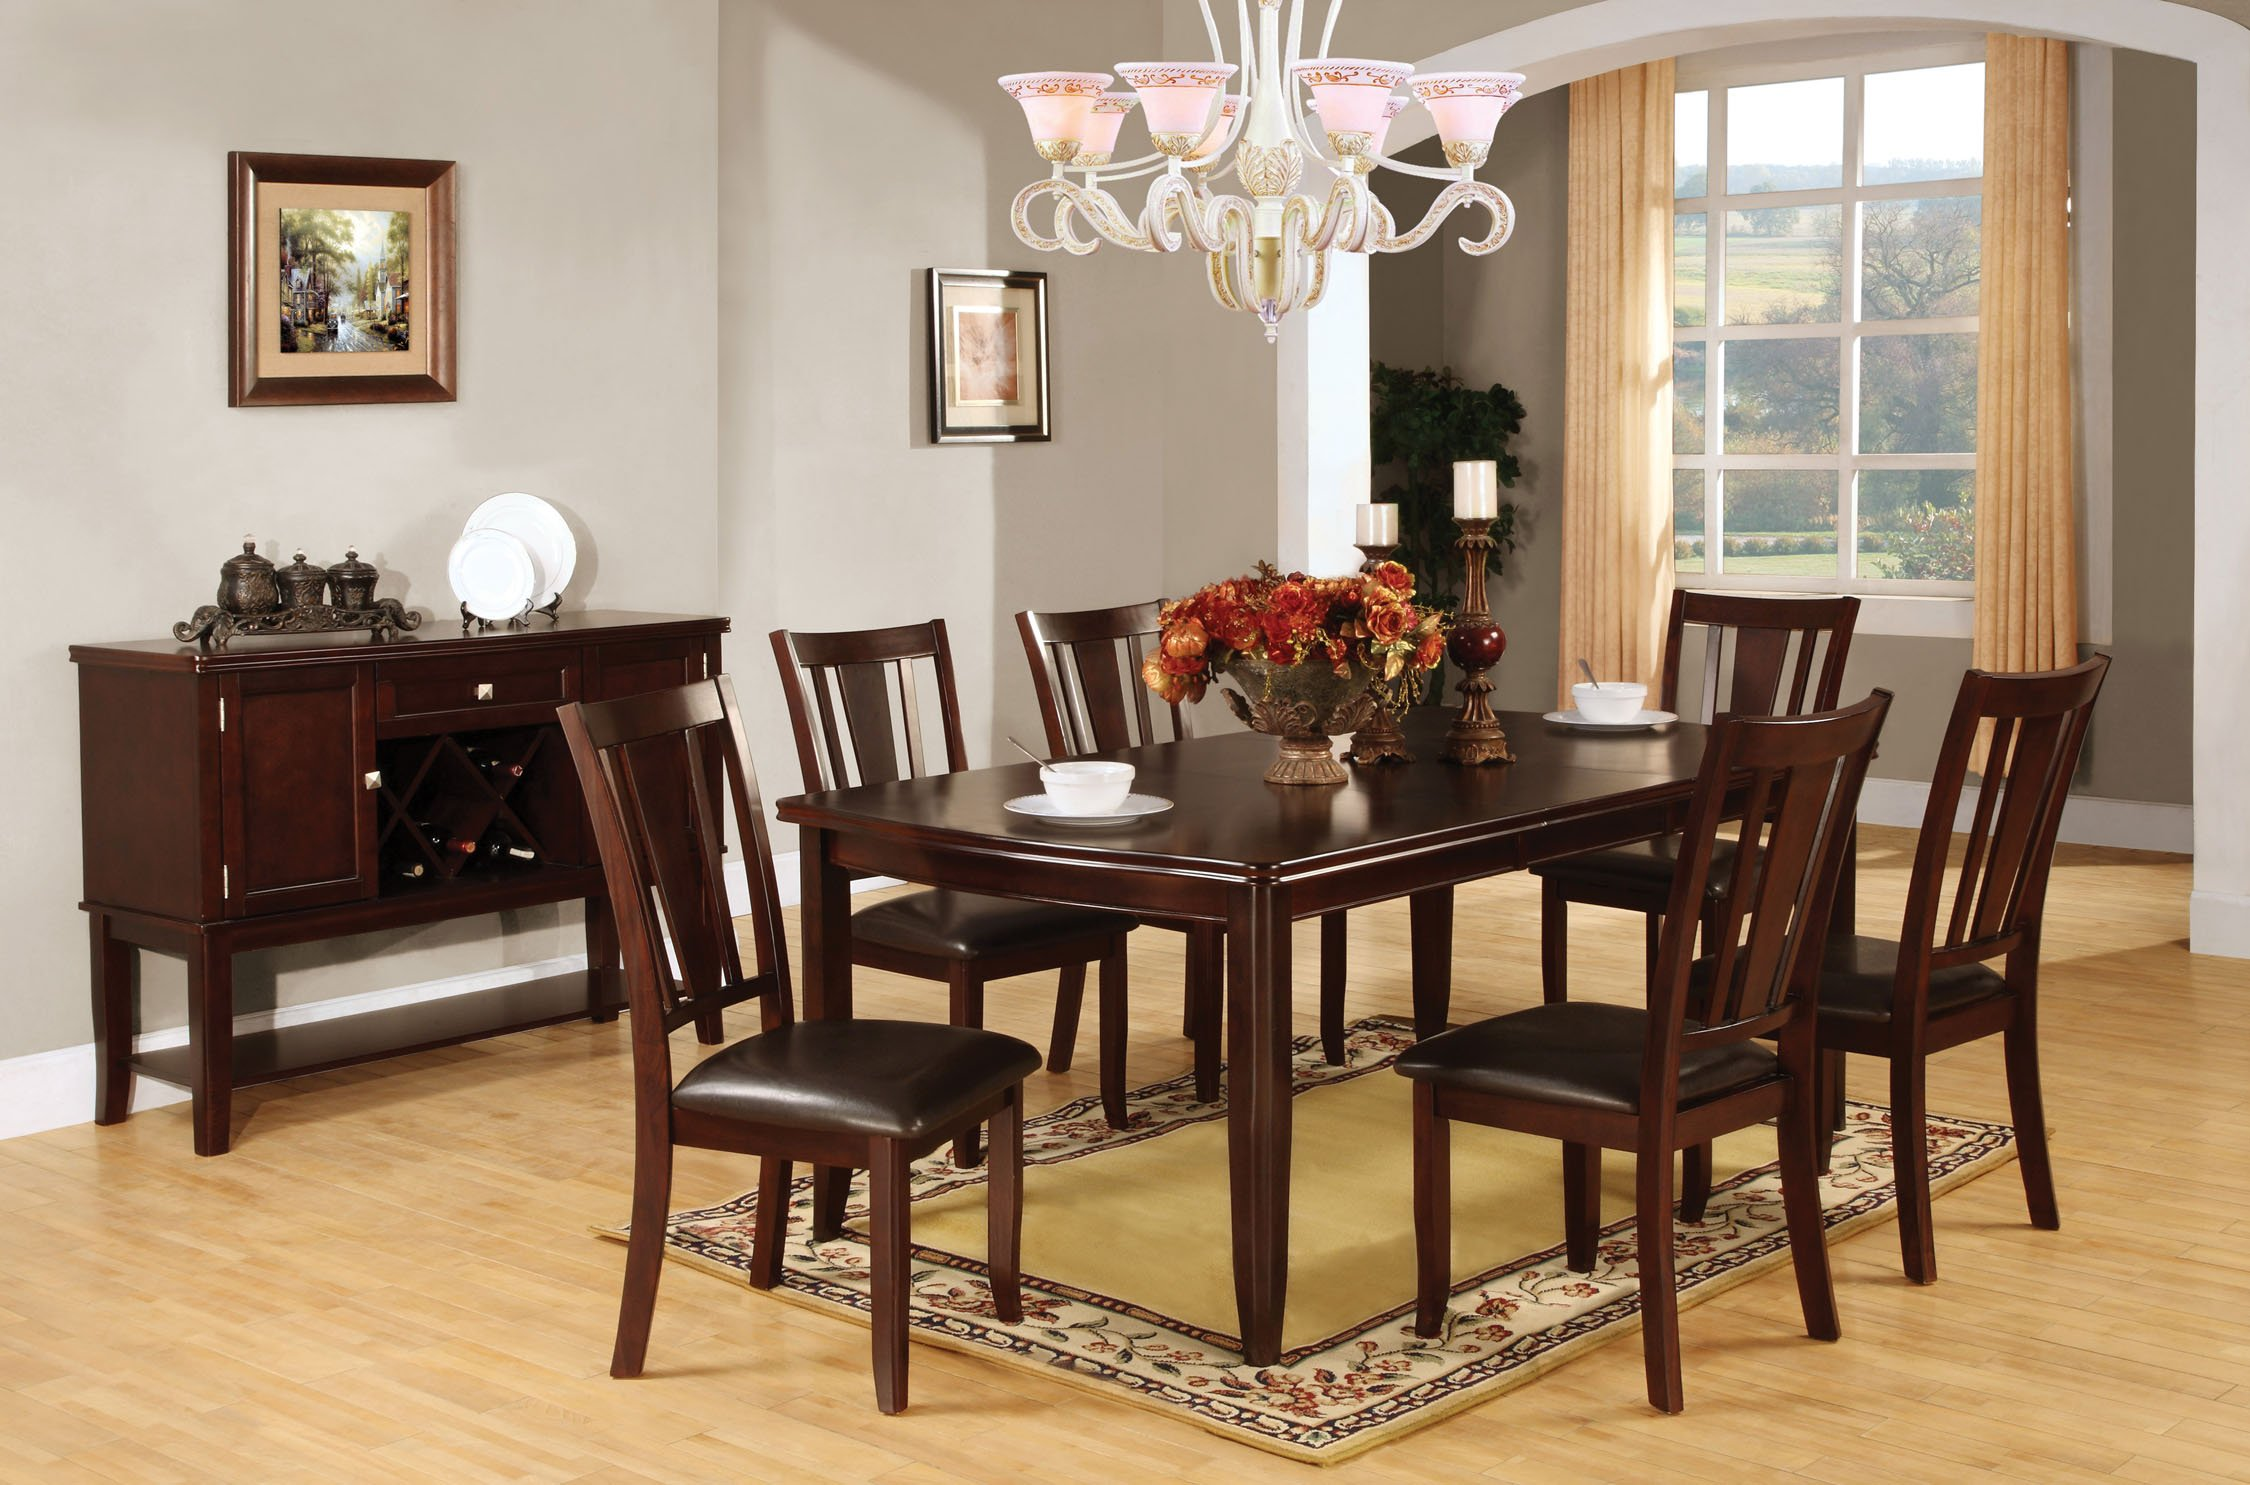 Furniture of America Anlow 7-Piece Dining Table Set with 18-Inch Expandable Leaf, Espresso by Furniture of America (Image #2)